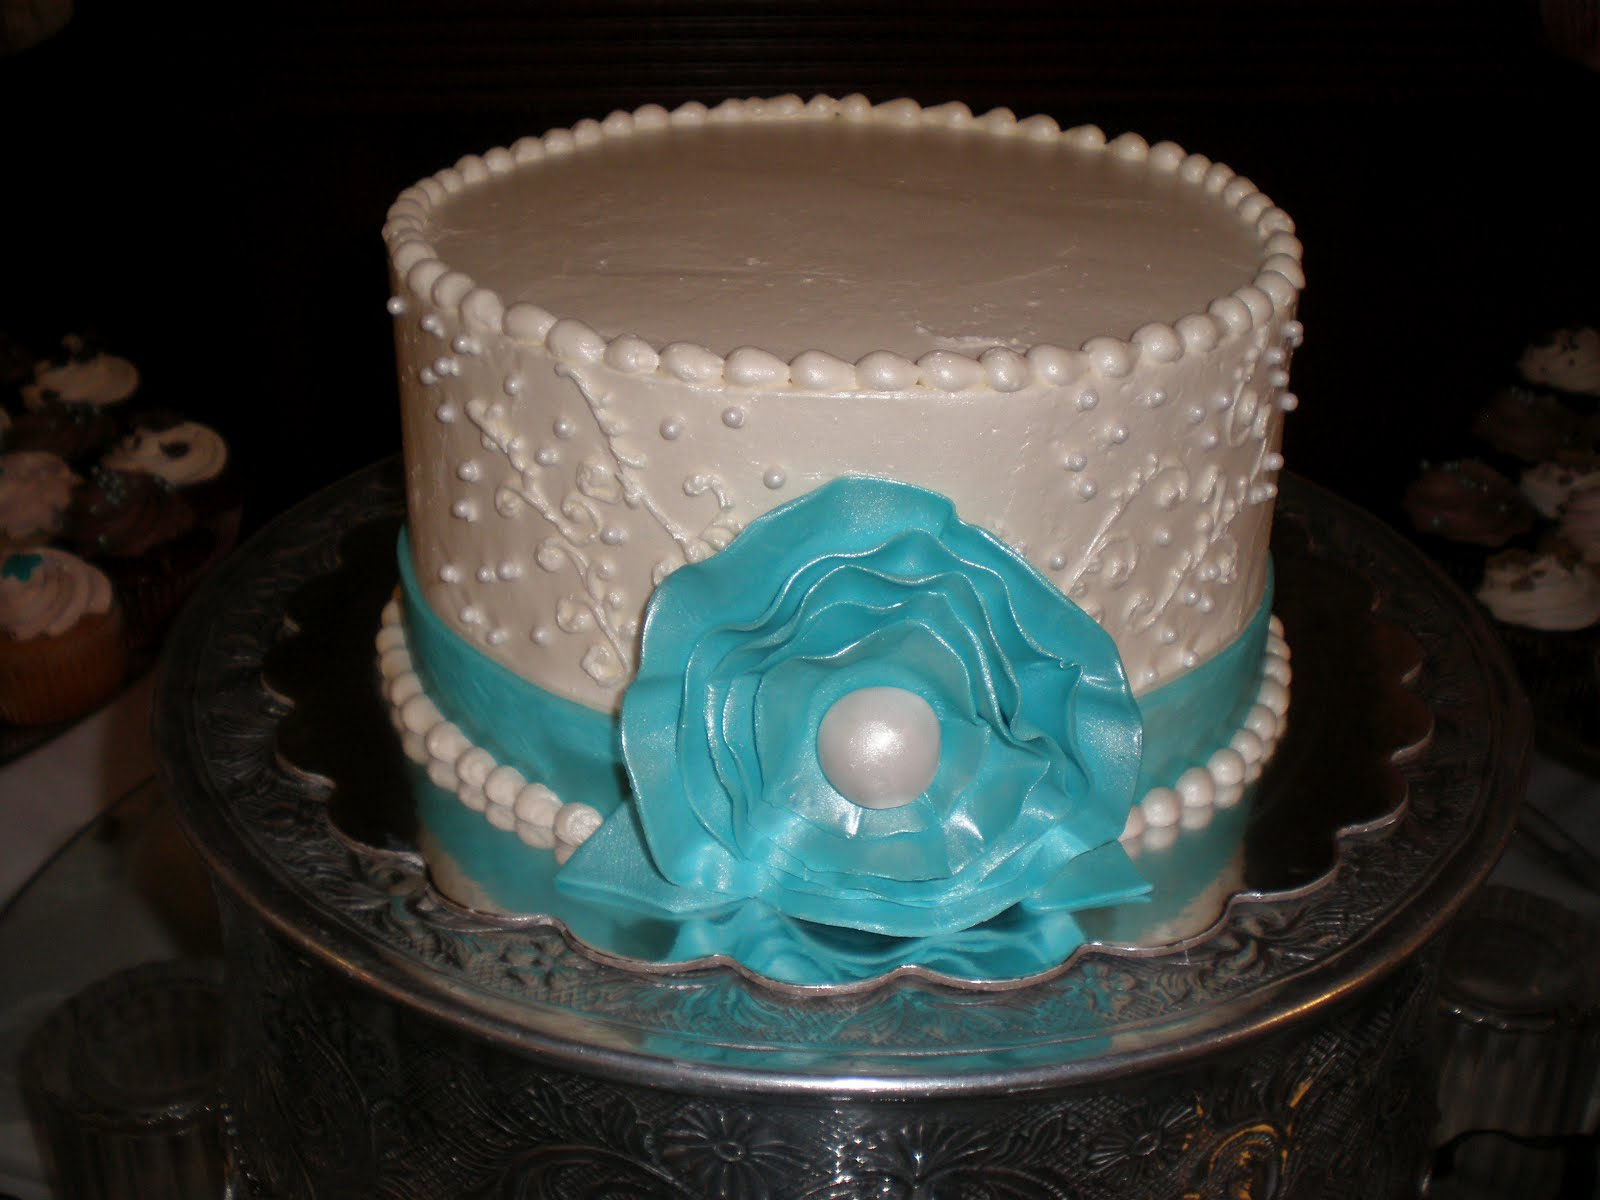 1000 images about Tiffany Blue Cakes on Pinterest